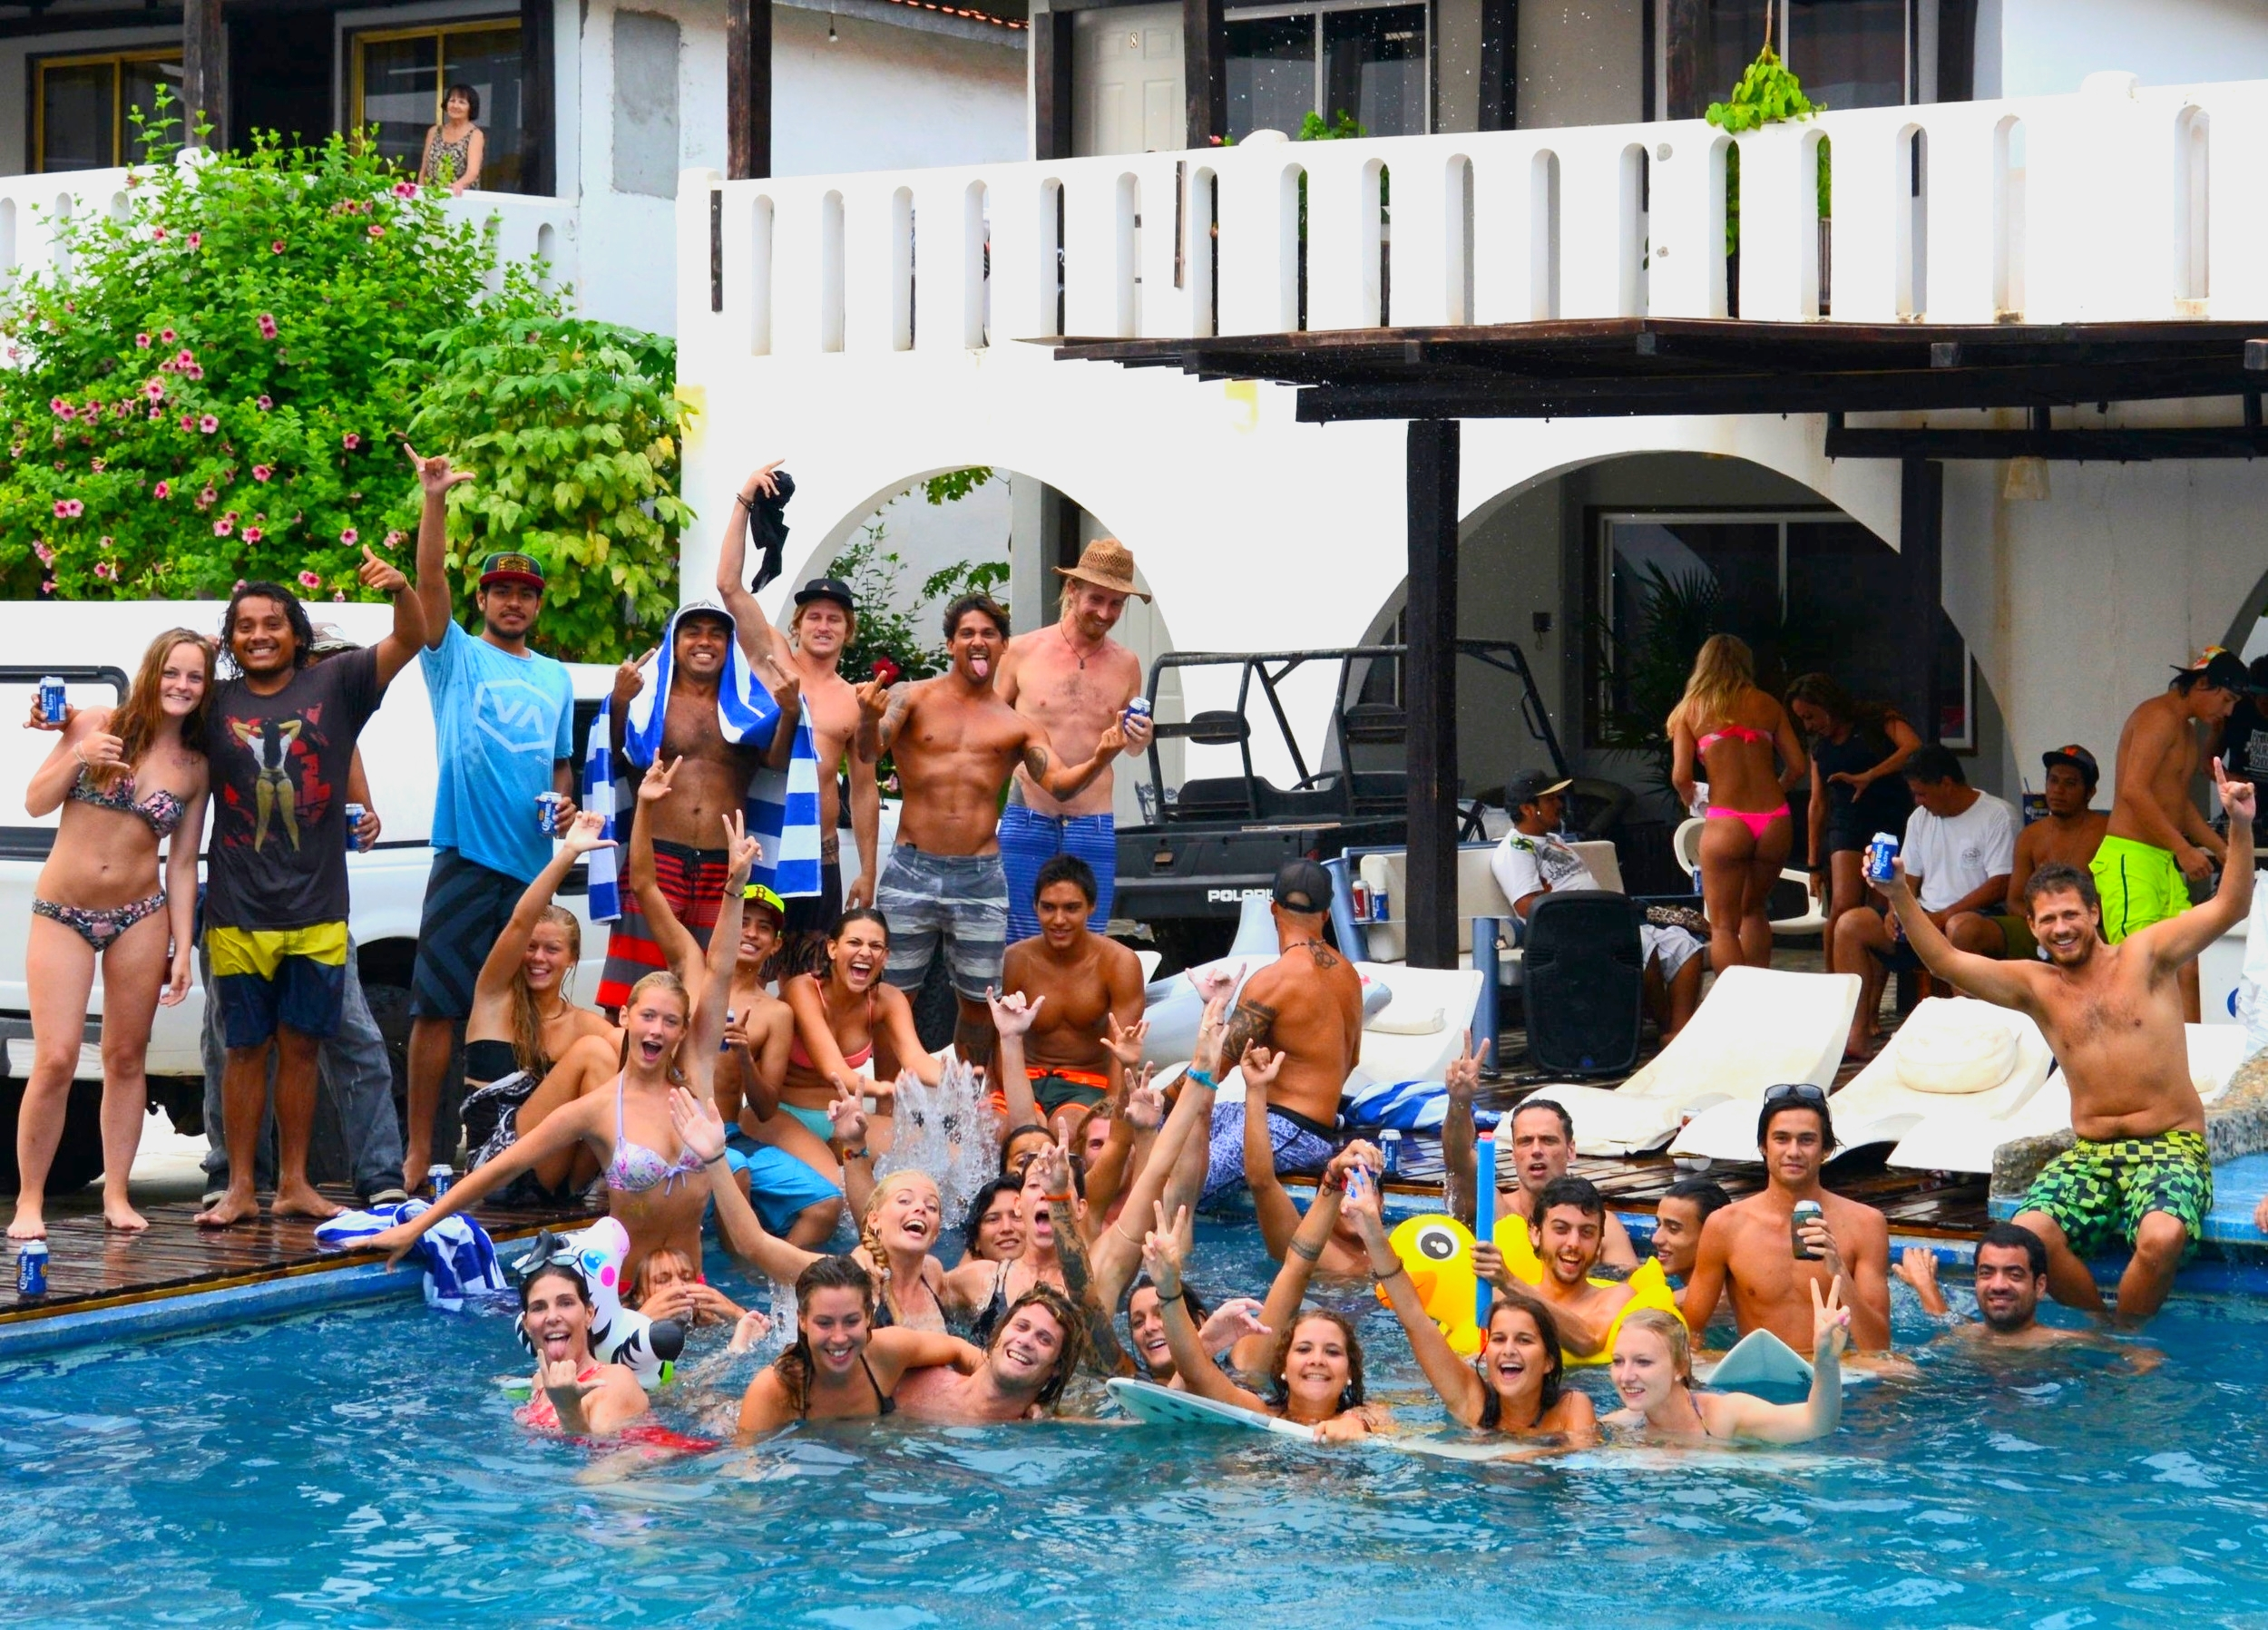 Where international Pool Parties are a usual…